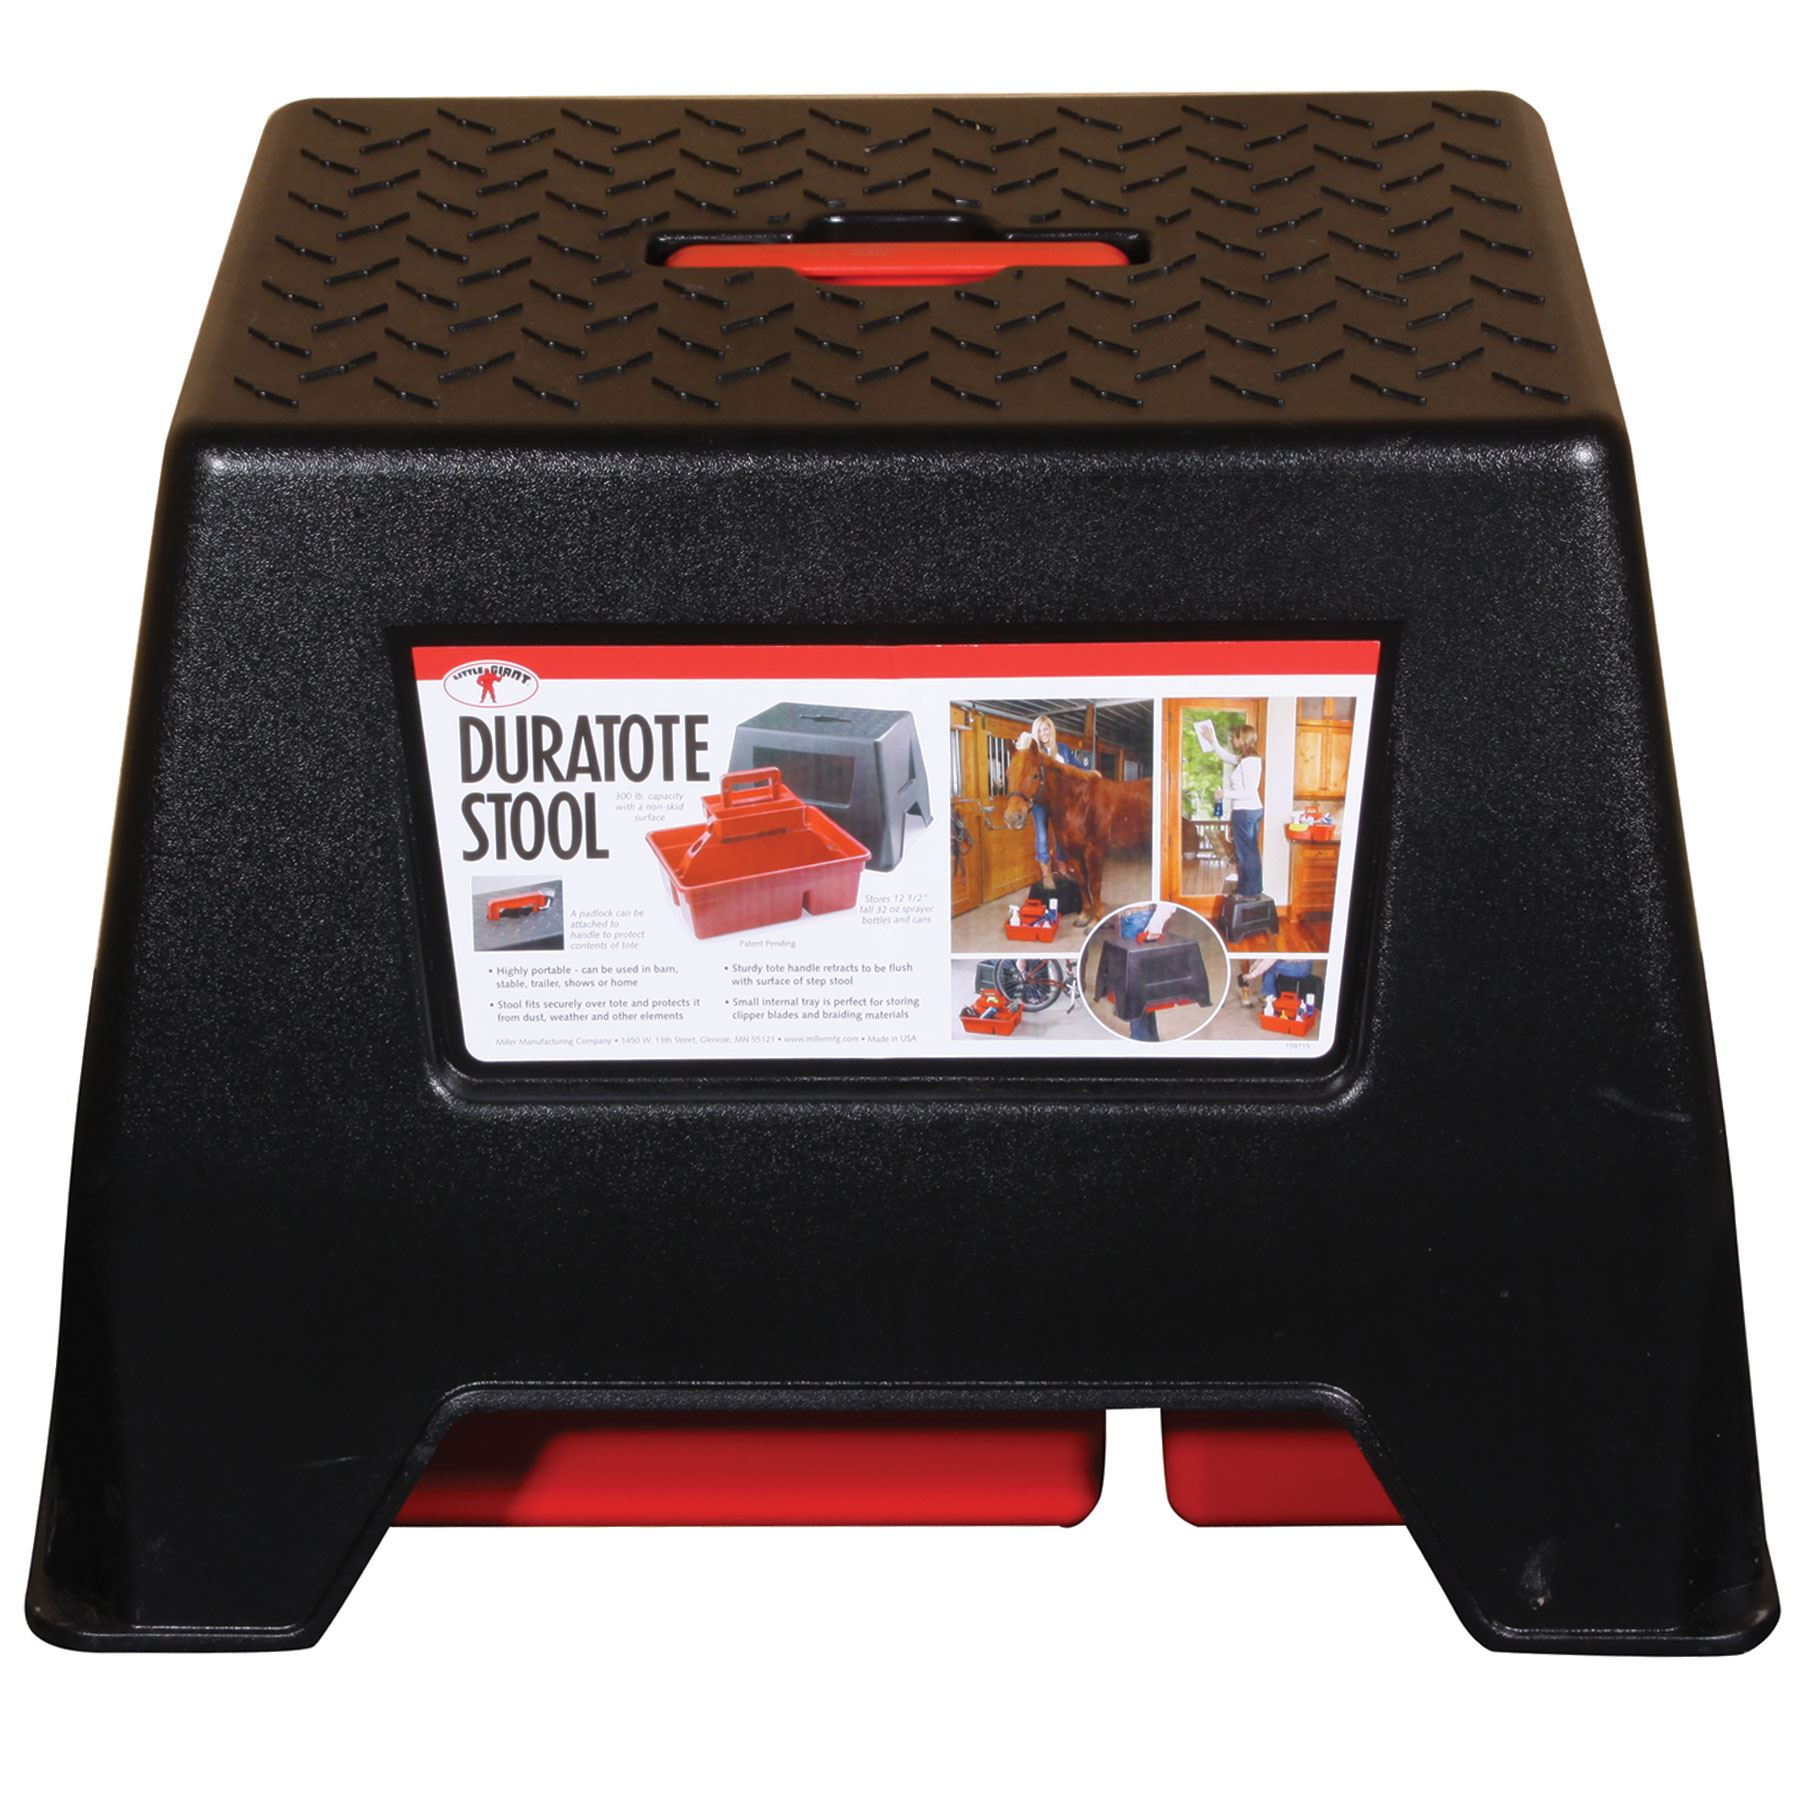 ... Little Giant Duratote Step Stool ...  sc 1 st  Schneider Saddlery & Little Giant Duratote Step Stool in Grooming Bags / Cases / Boxes ... islam-shia.org